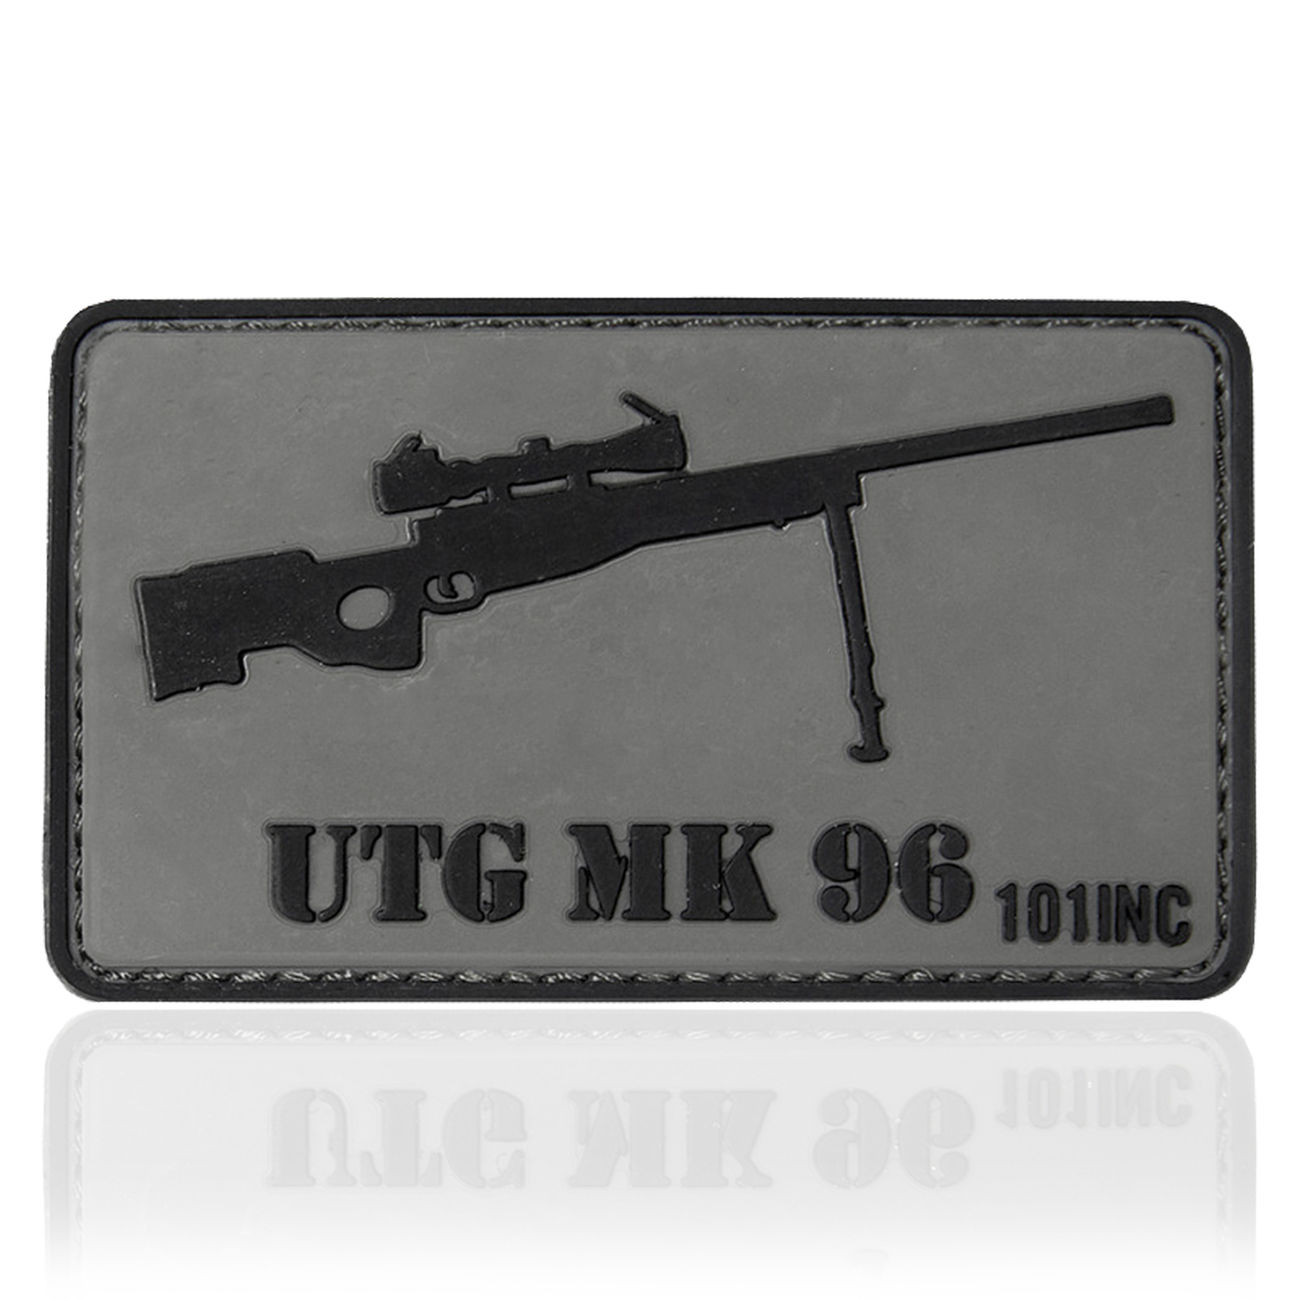 101 INC. 3D Rubber Patch UTG MK 96 0